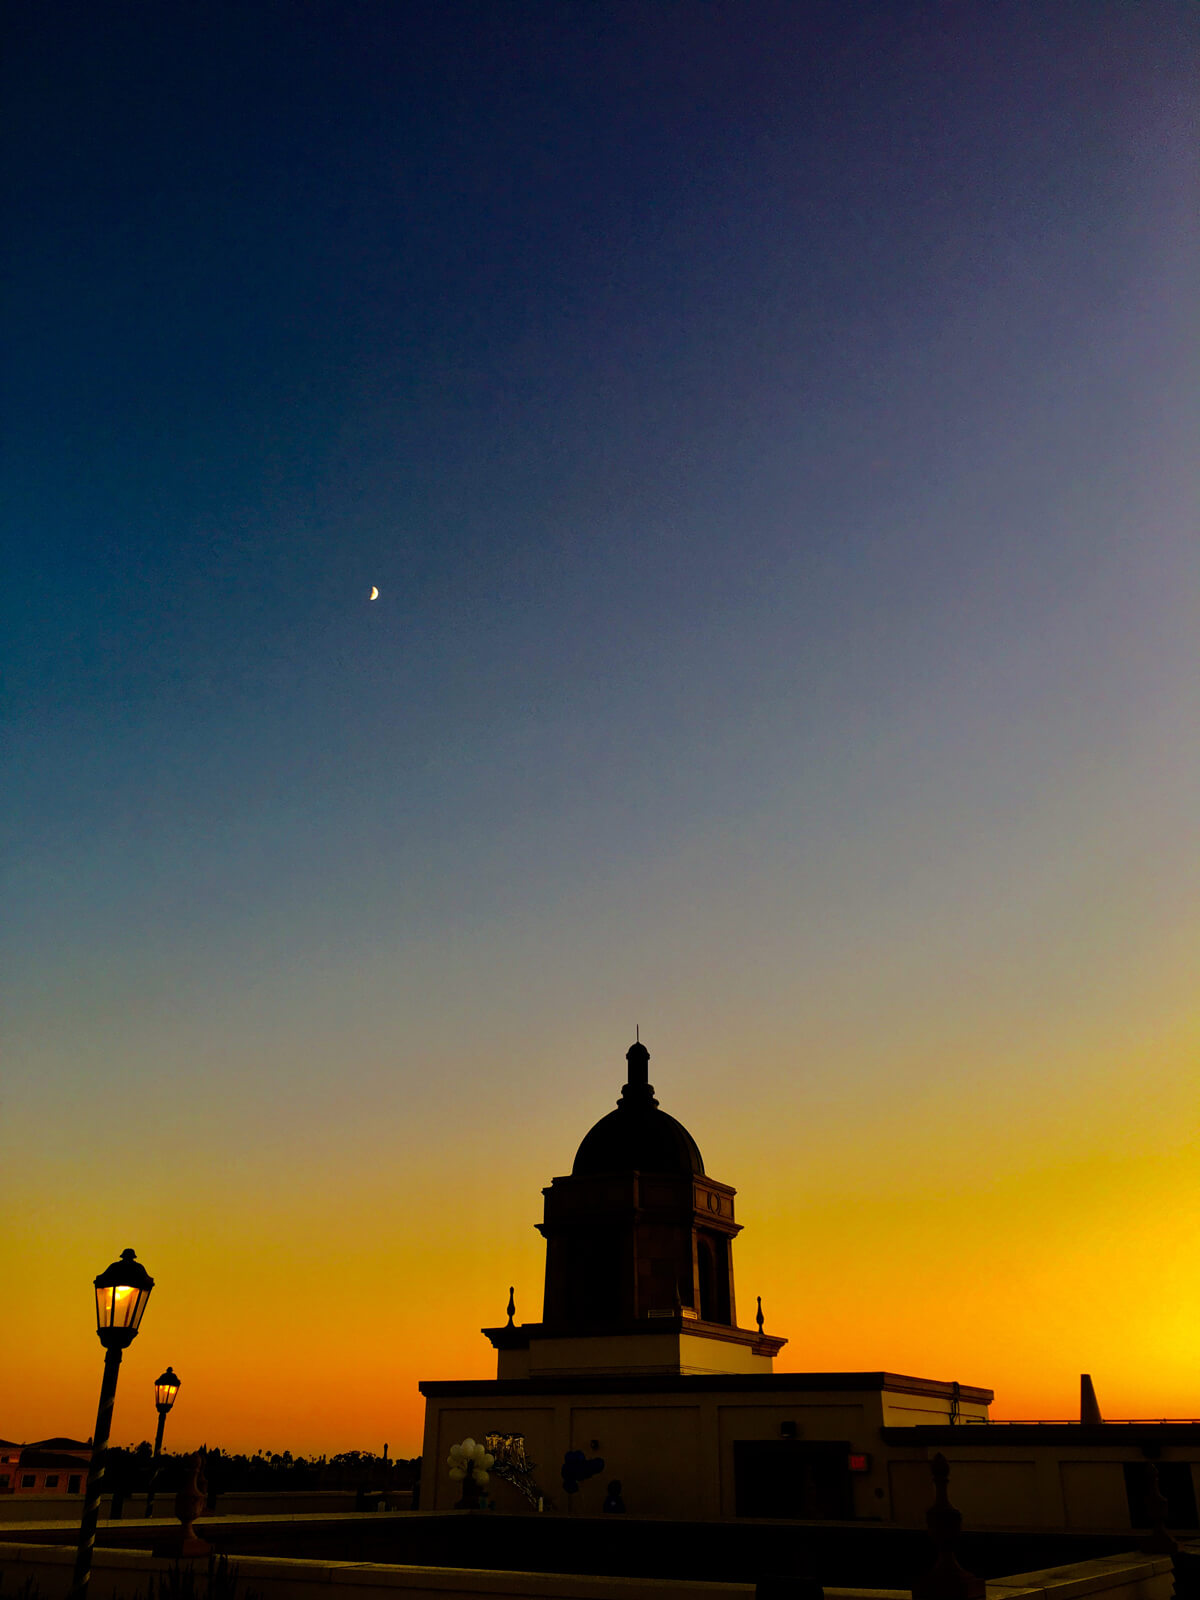 Immaculata silhouette in the evening sky